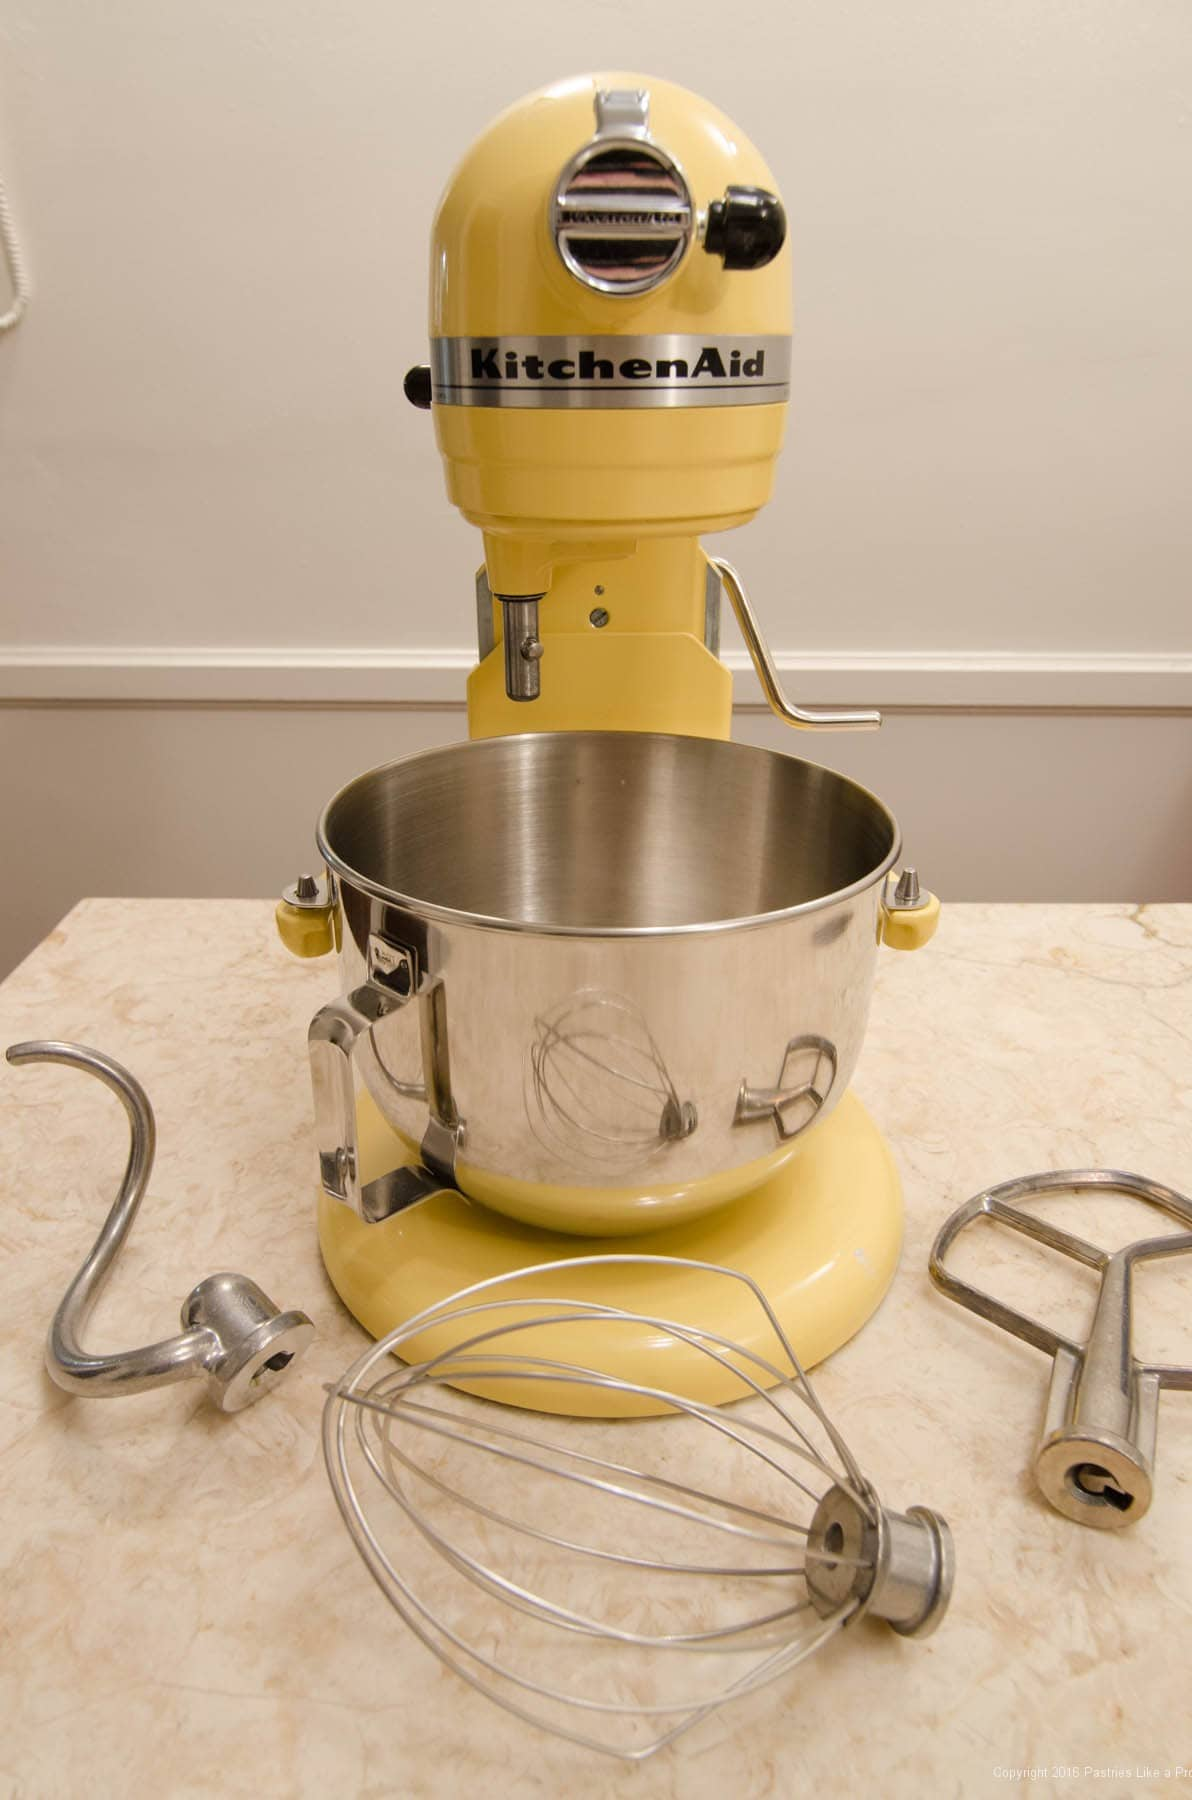 audrey aide the for is kitchenaid kitchen mama mixer aqua meet m